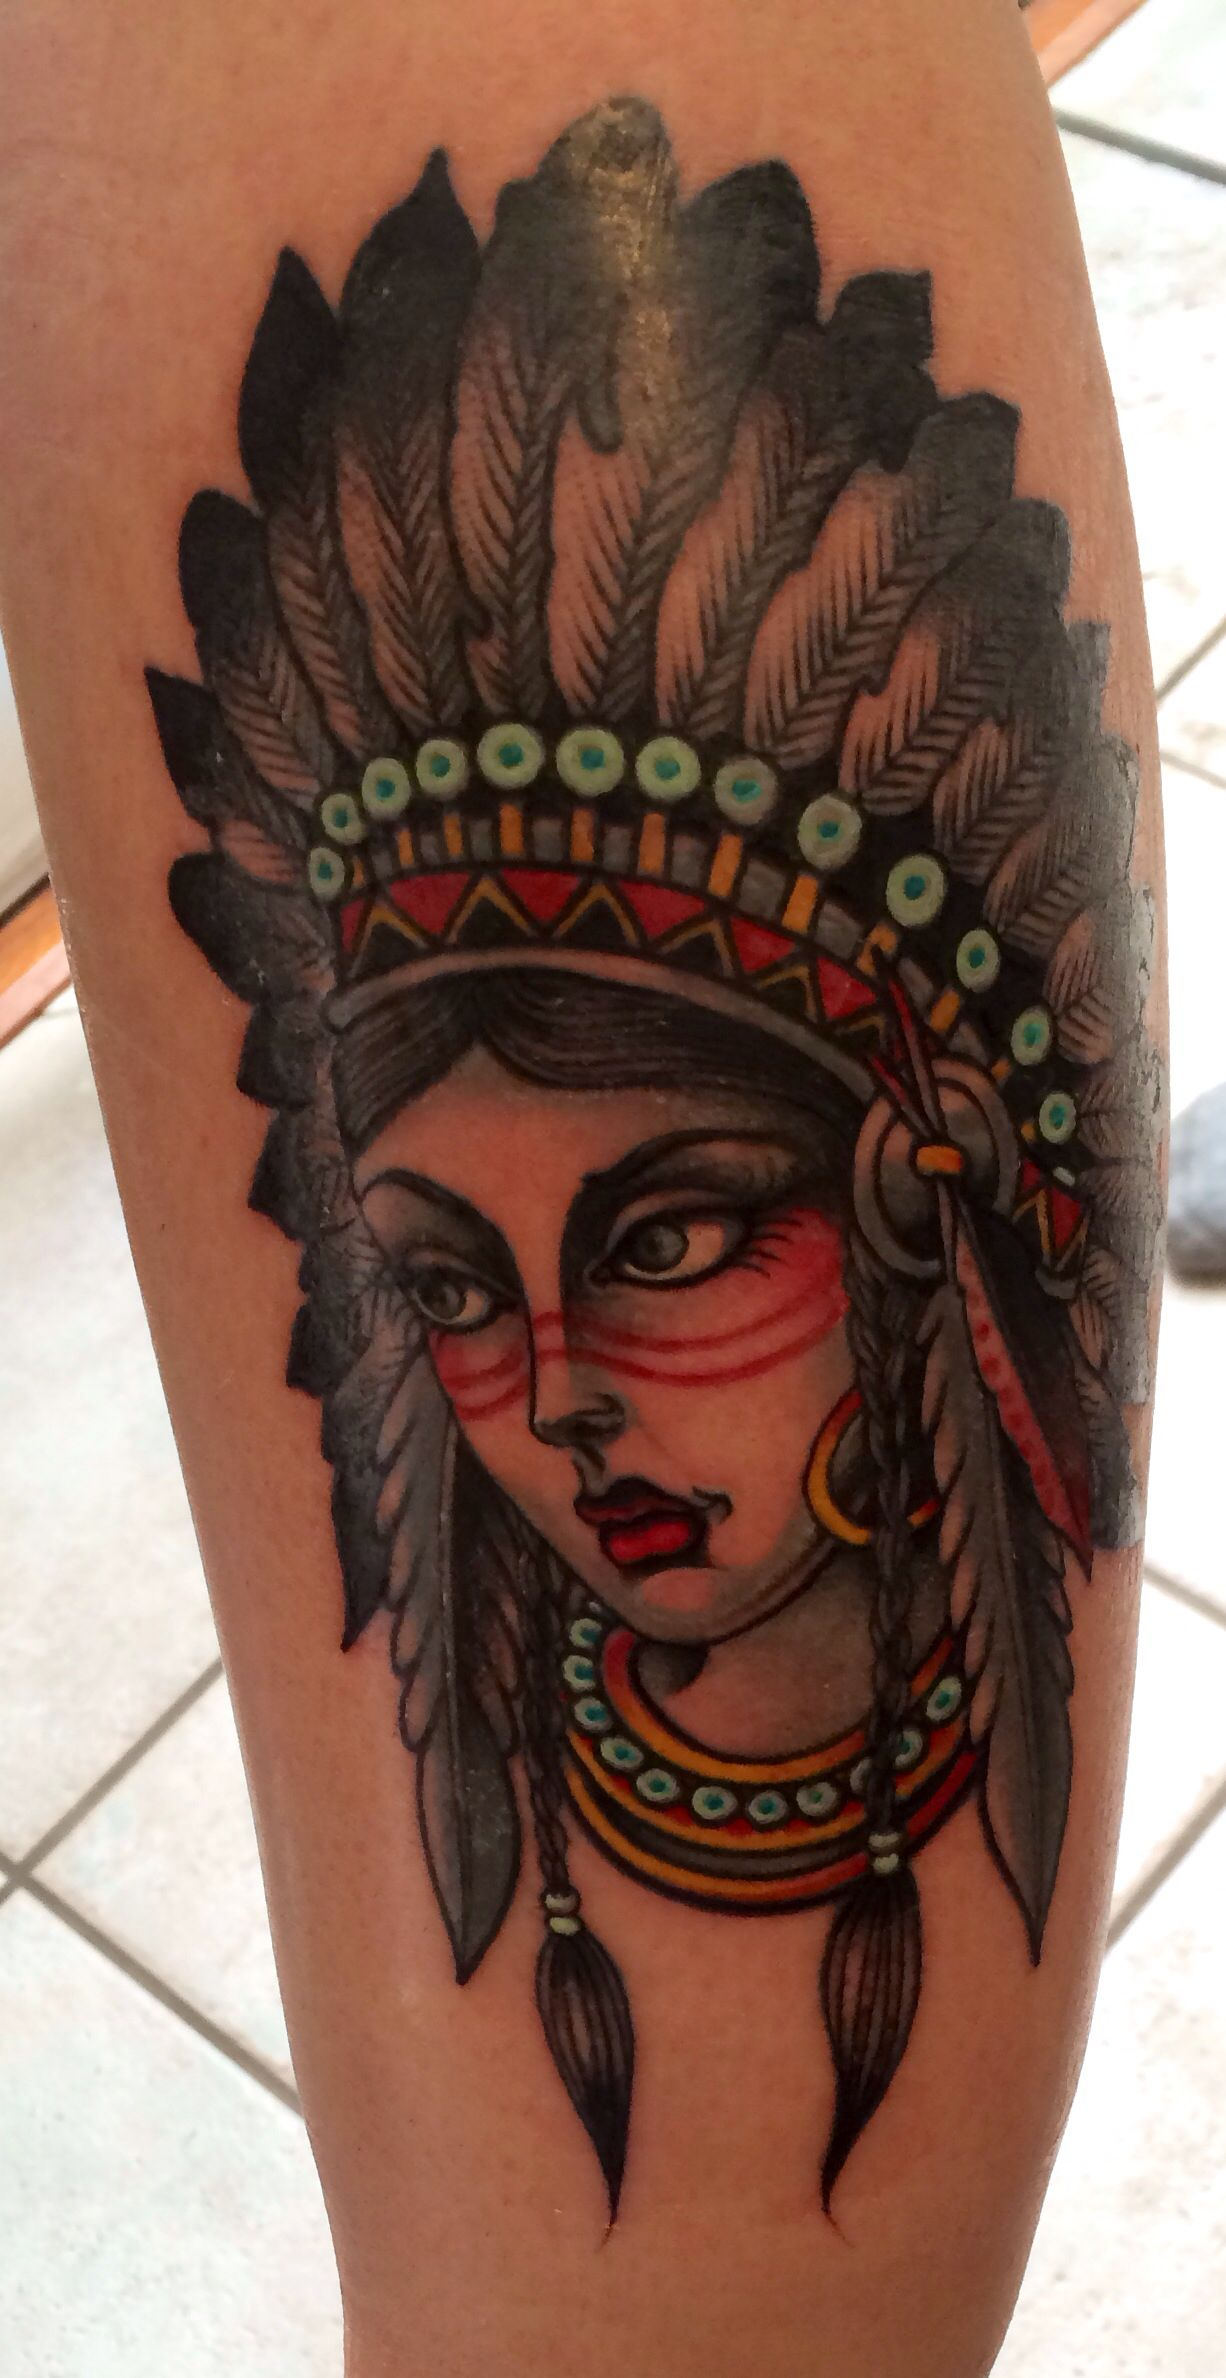 Indian girl tattoo beautifully created by an artist in